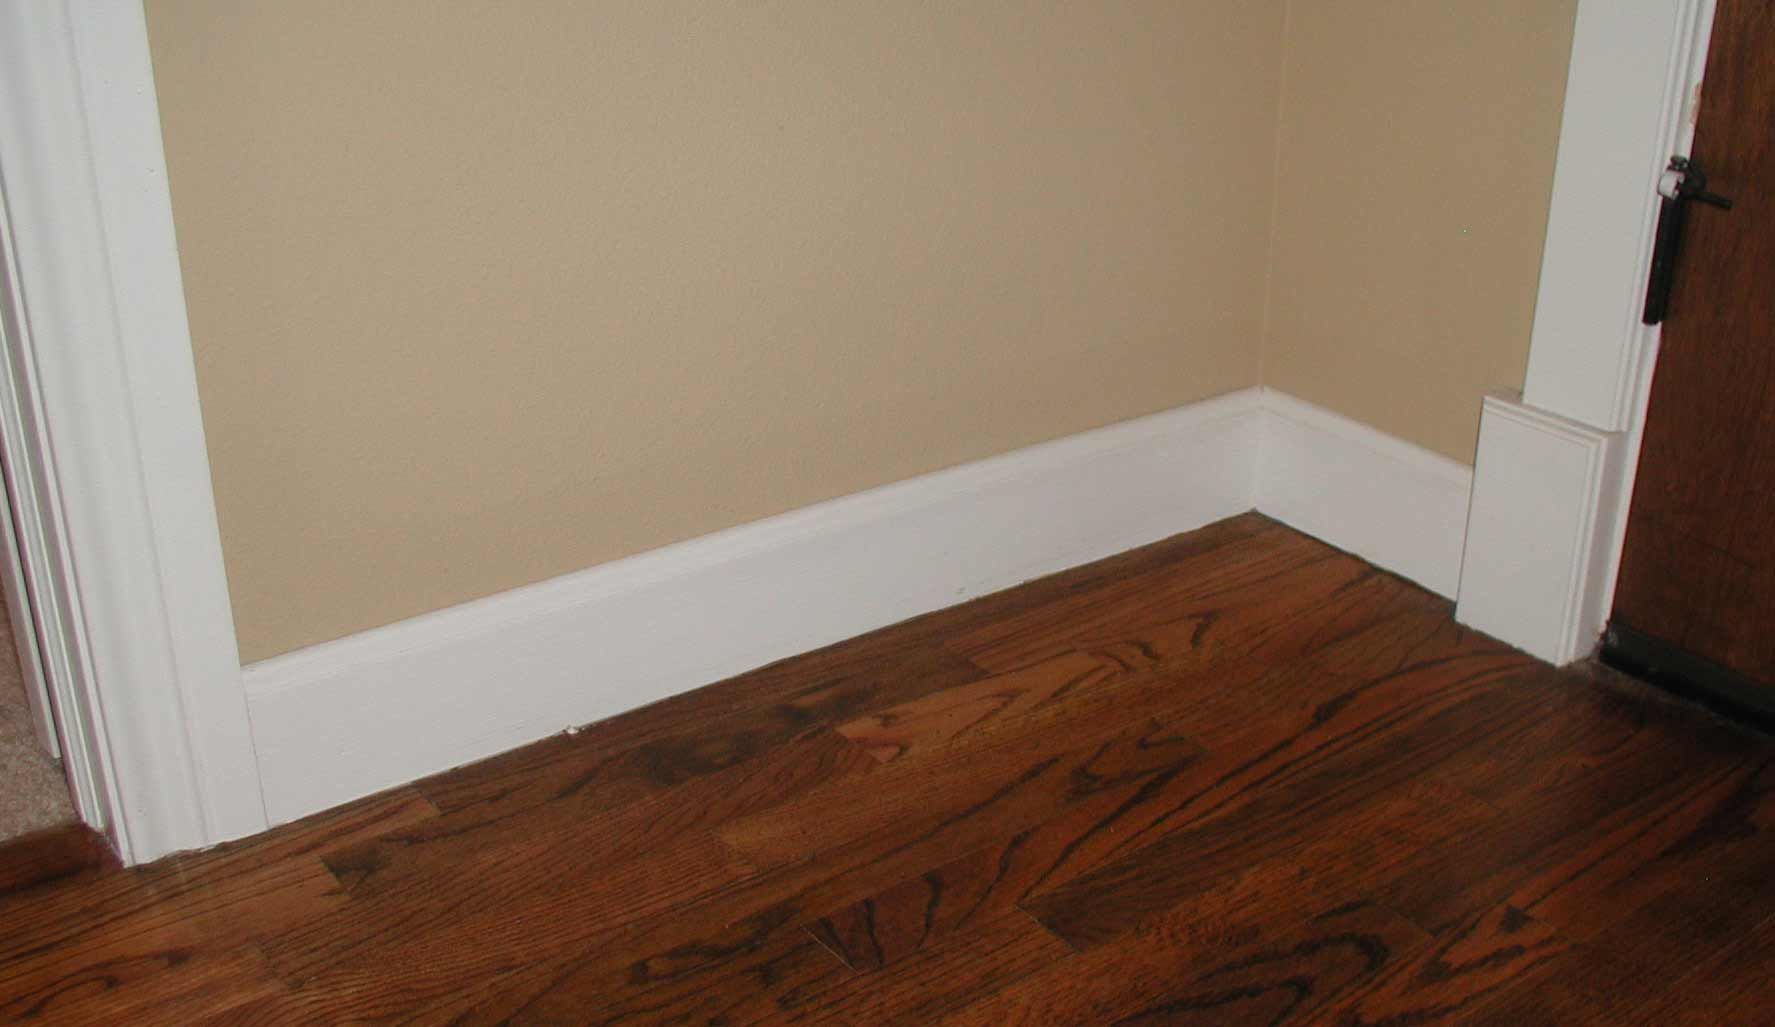 Simple White Baseboard Laminate Wood Floors With Clear Lines